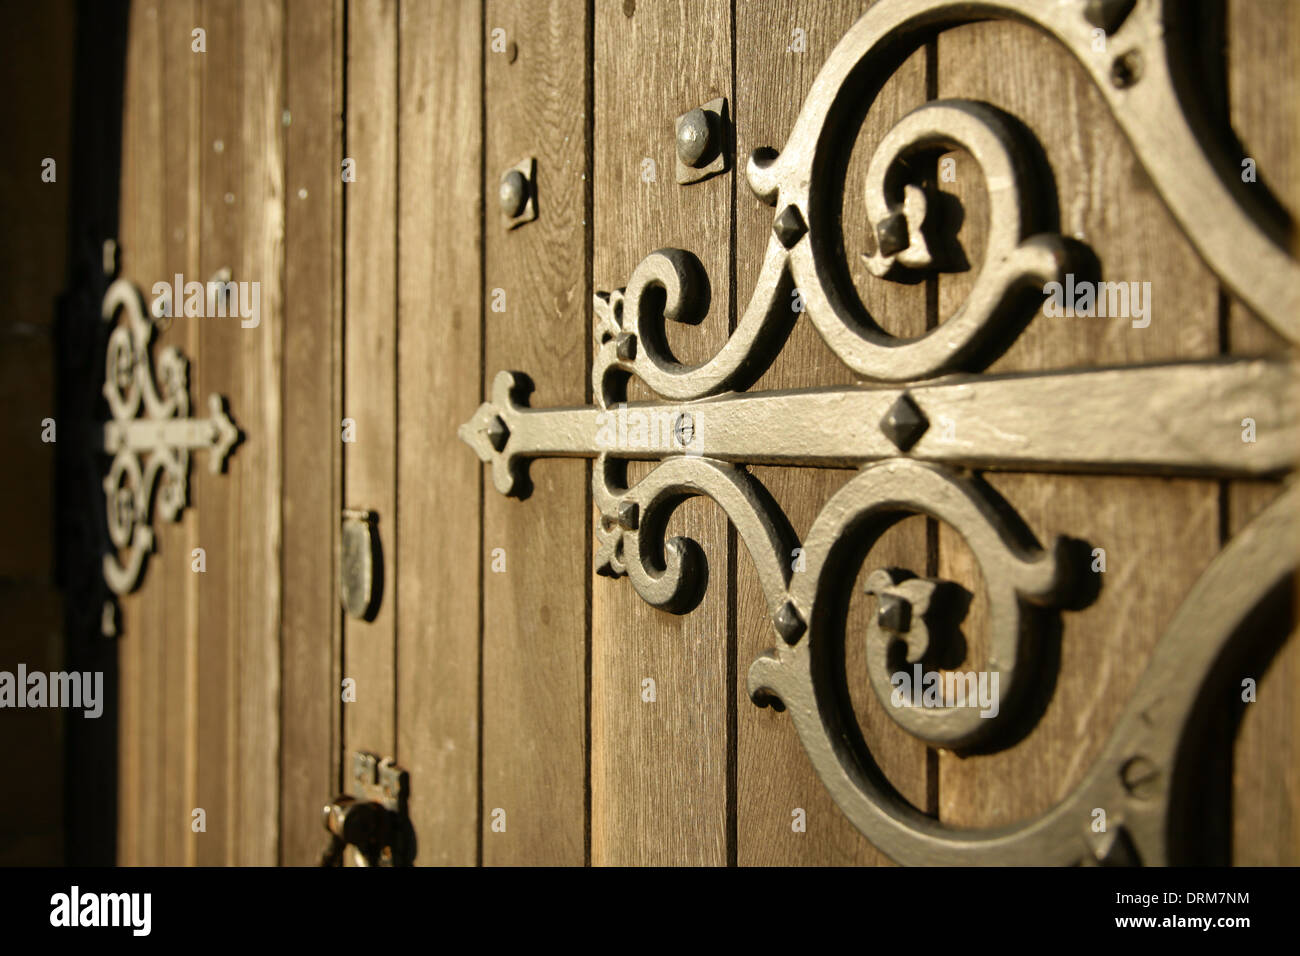 956 #9C7D2F Stock Photo Large Ornate Metal Hinges On The Front Door Of St Mary's  picture/photo Ornate Front Doors 39791300